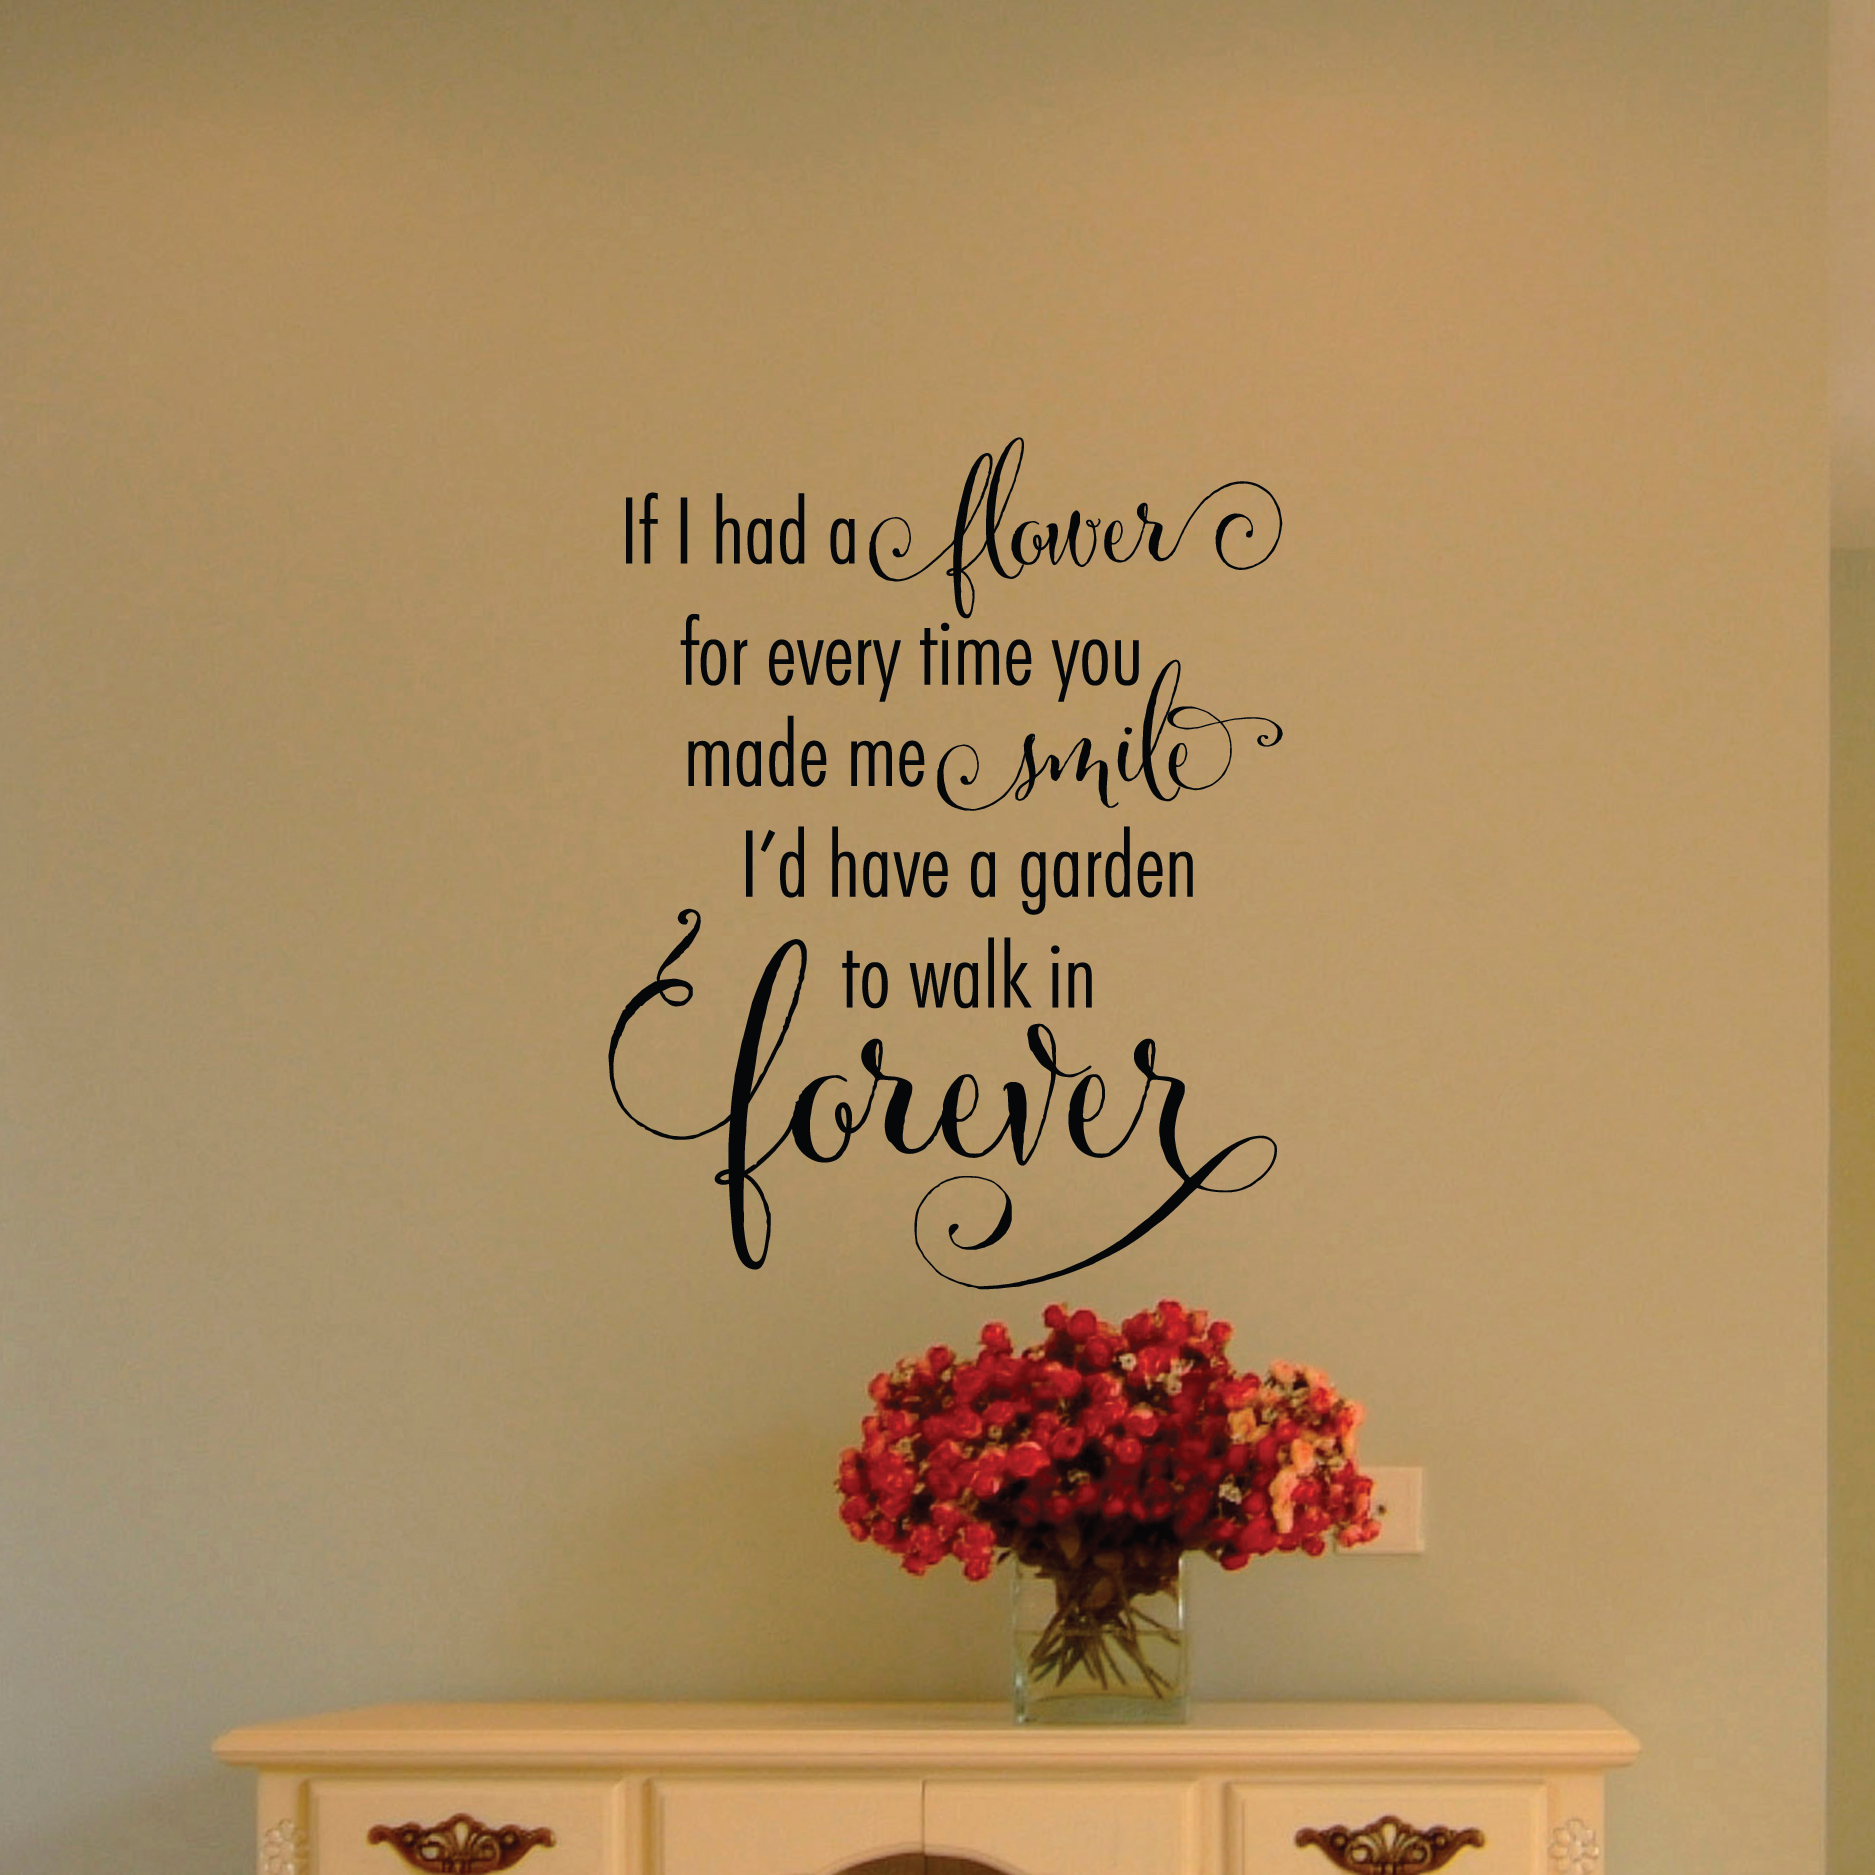 Garden To Walk In Forever Wall Quotes™ Decal | WallQuotes.com